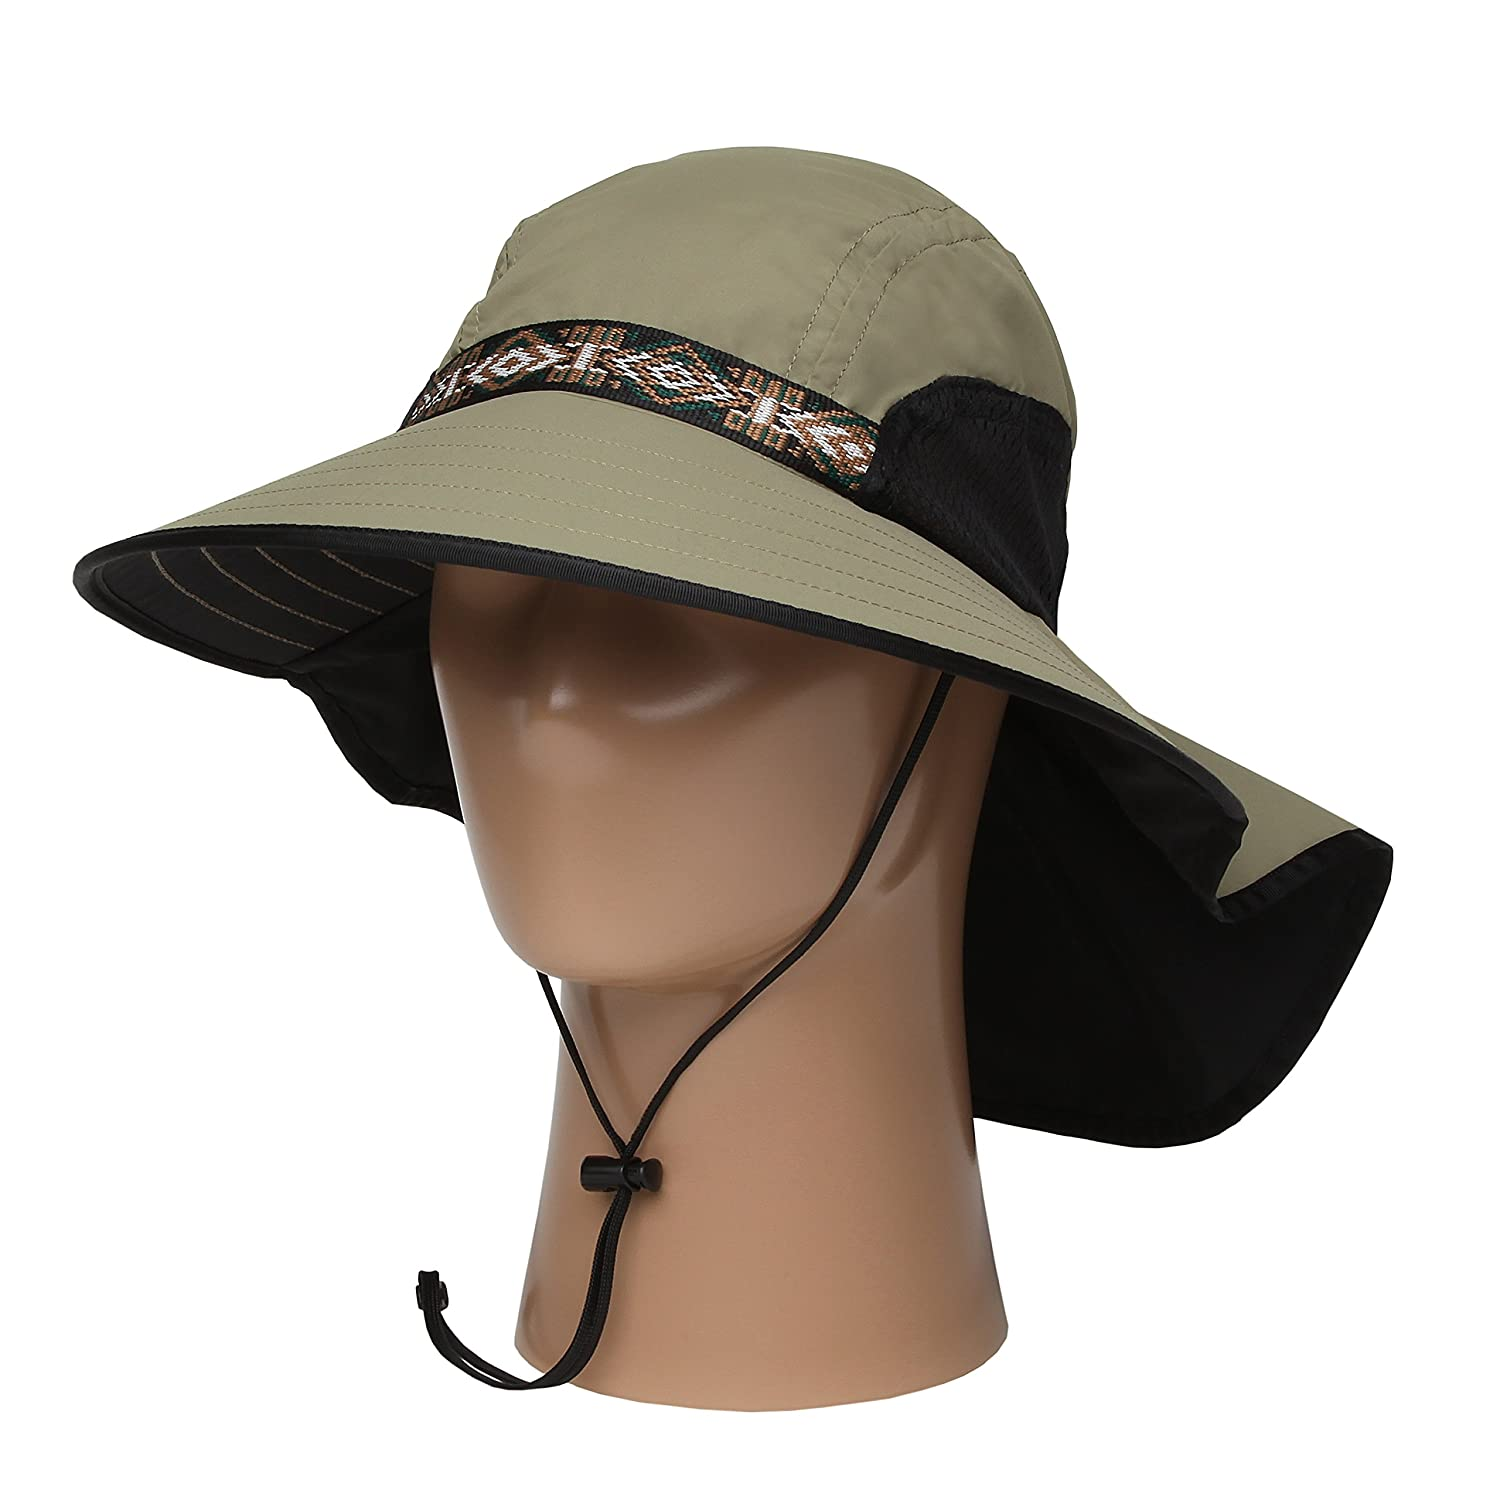 Sunday Afternoons Adventure Hat INC S2A01001B59804